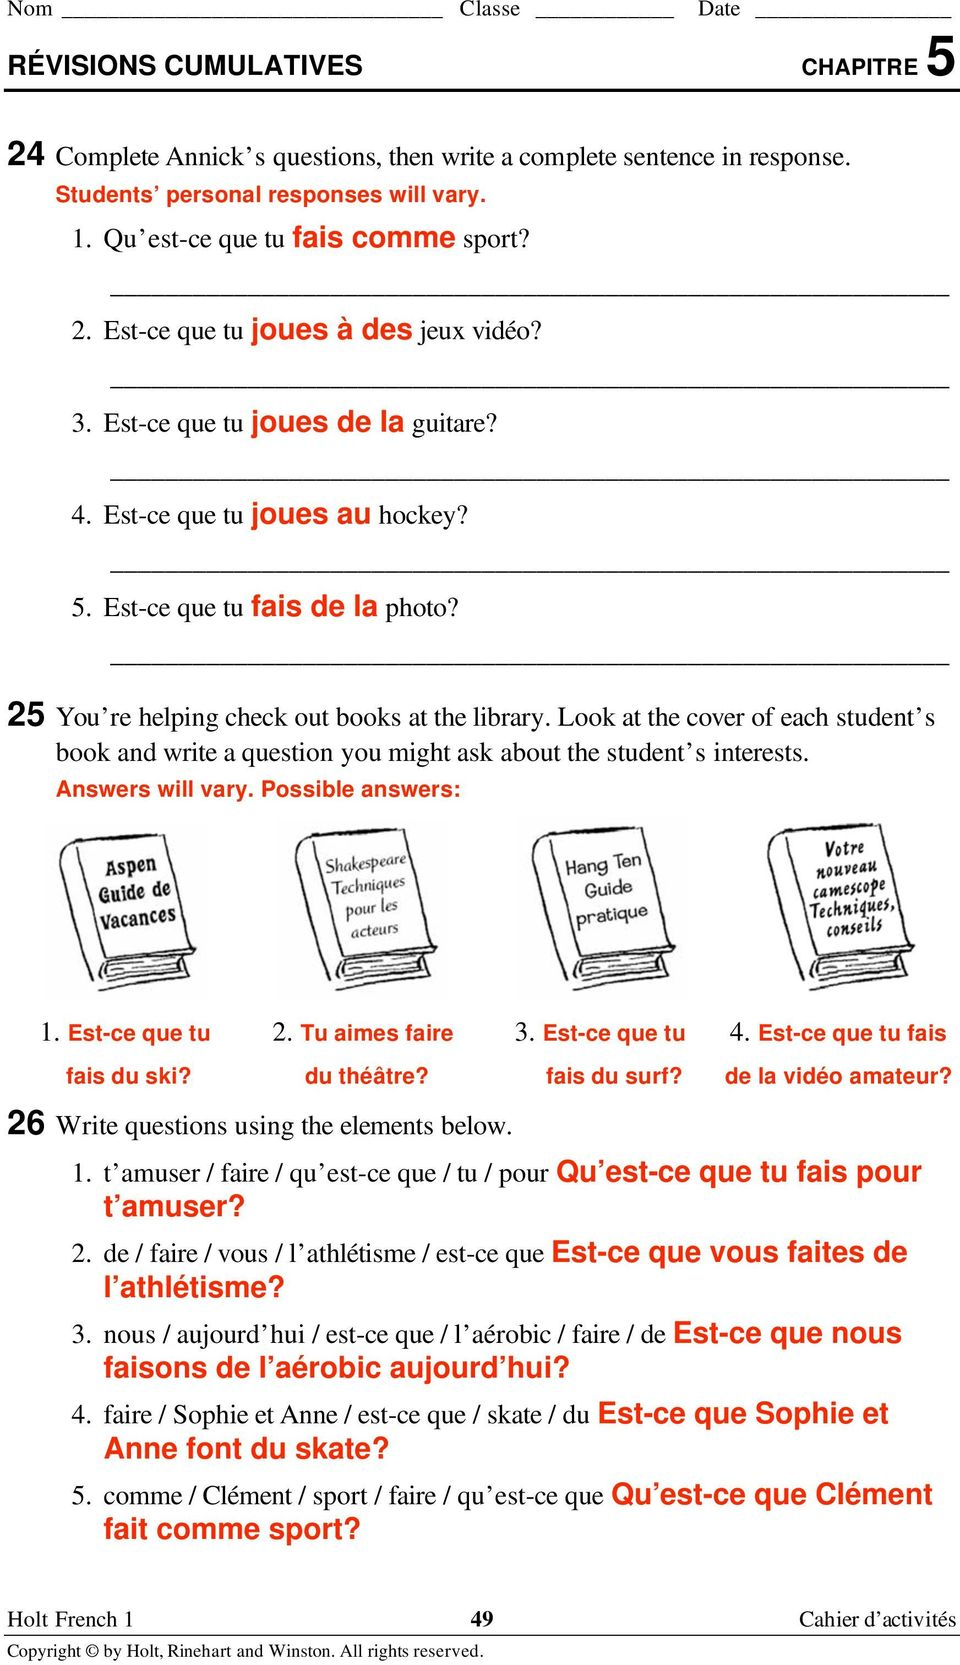 Berk demarzo corporate finance solutions manual ebook coupon codes workbooks holt french 2 bien dit workbook answers free printable workbooks holt french 2 bien dit fandeluxe Images